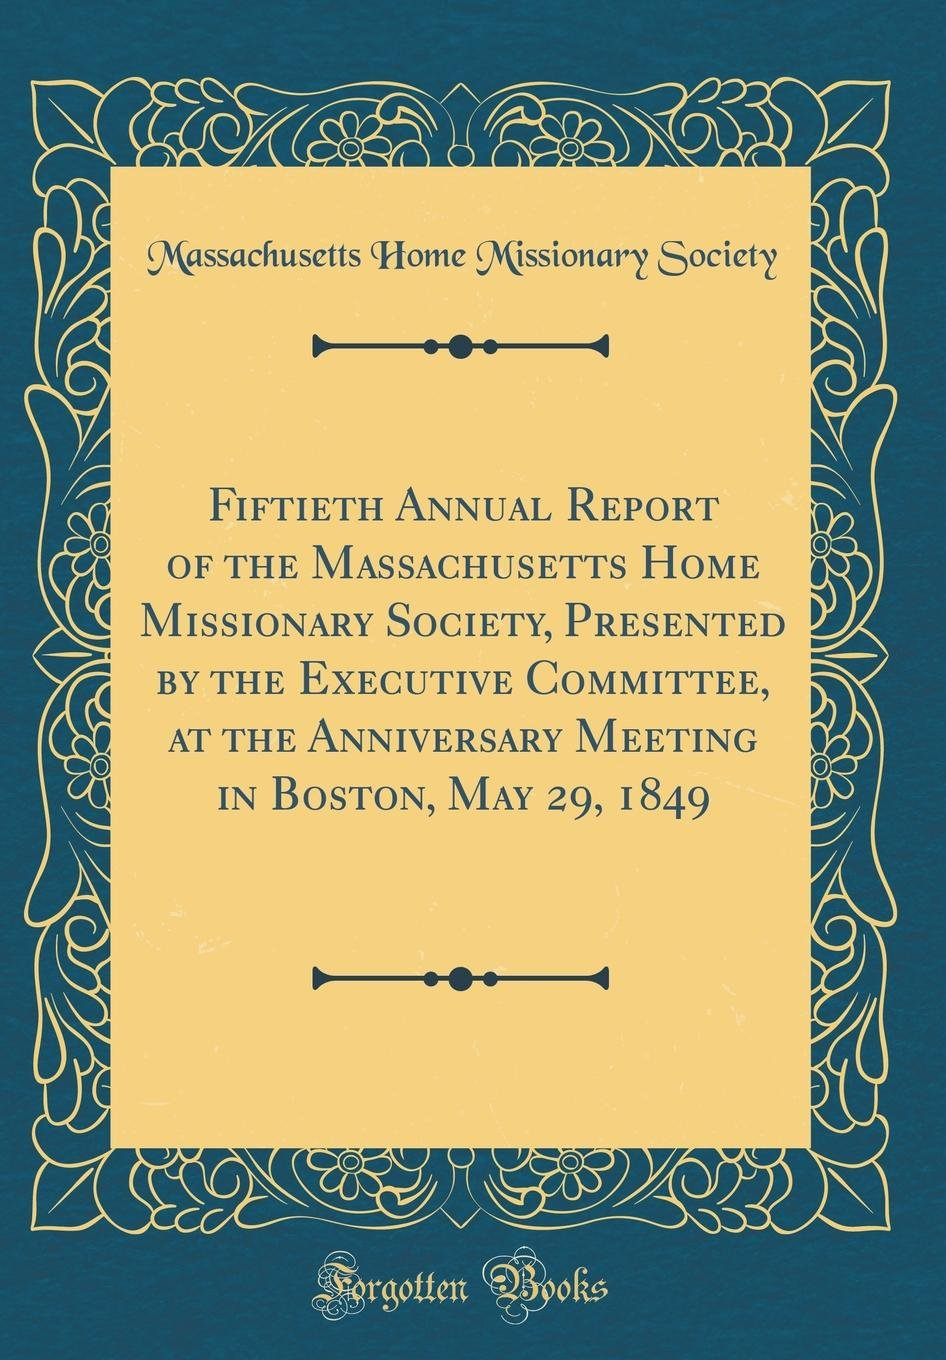 Download Fiftieth Annual Report of the Massachusetts Home Missionary Society, Presented by the Executive Committee, at the Anniversary Meeting in Boston, May 29, 1849 (Classic Reprint) pdf epub